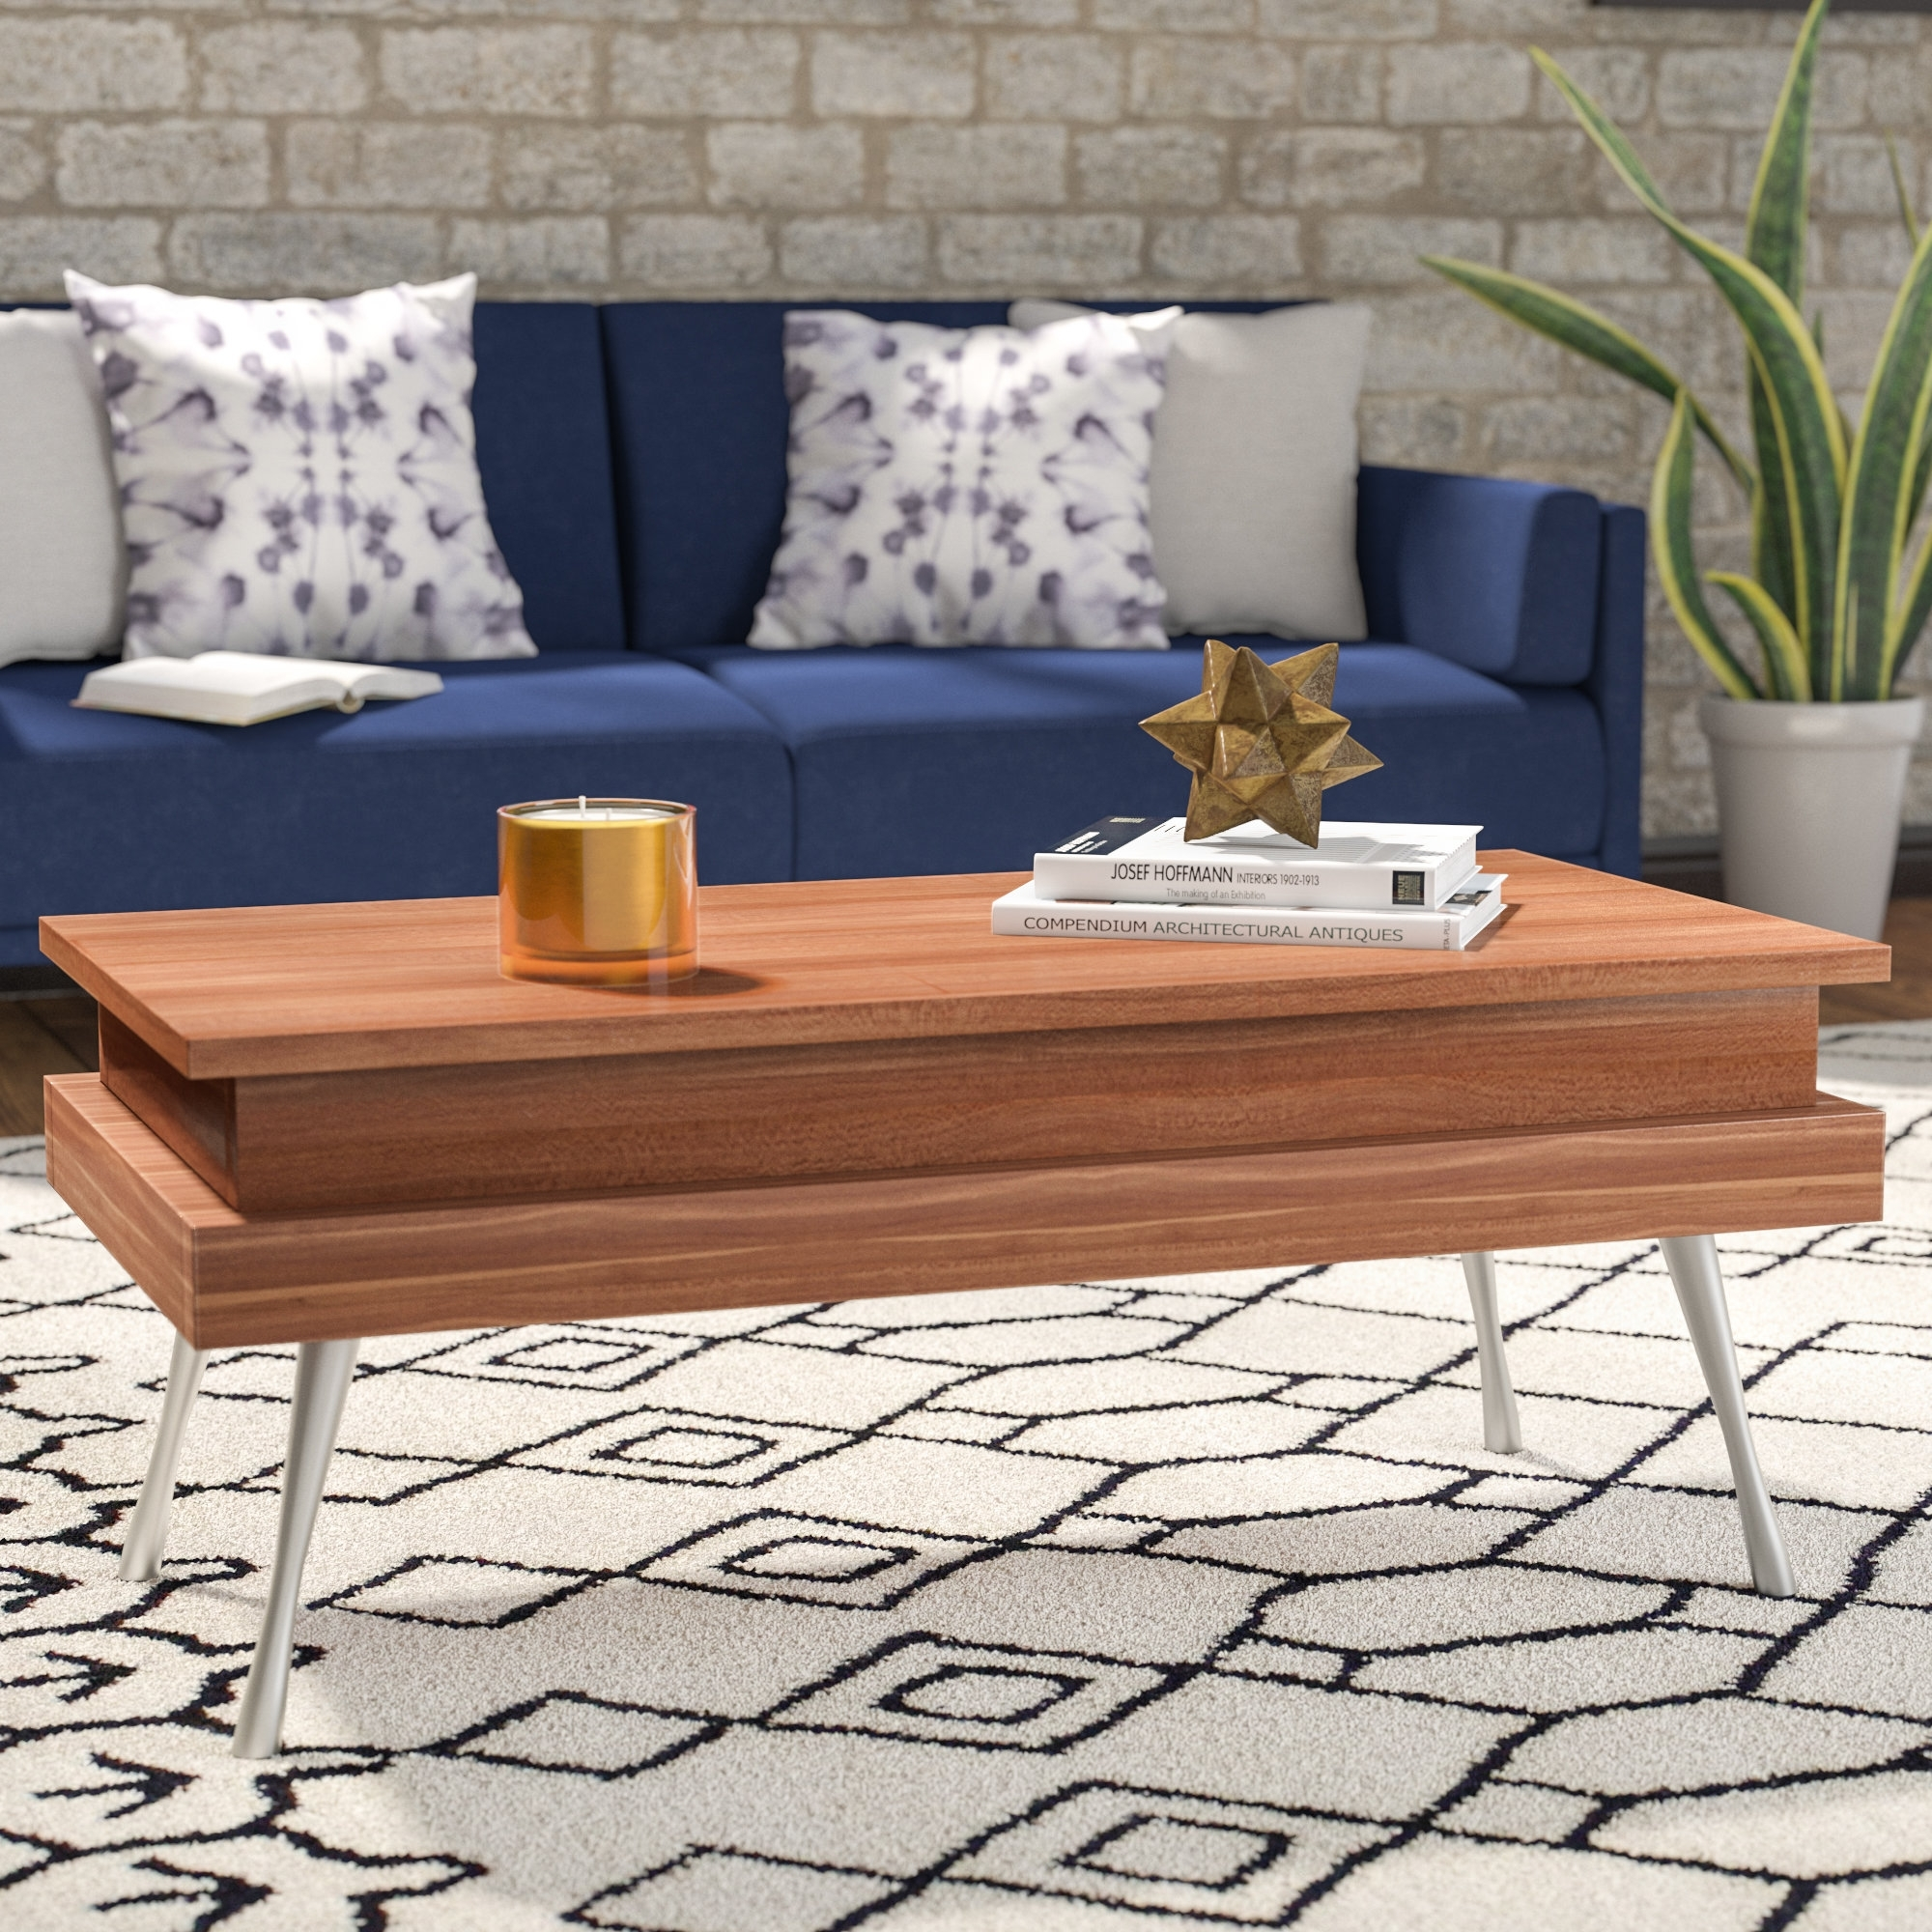 Lift Top Coffee Tables You'll Love | Wayfair Within Stately Acrylic Coffee Tables (View 18 of 30)